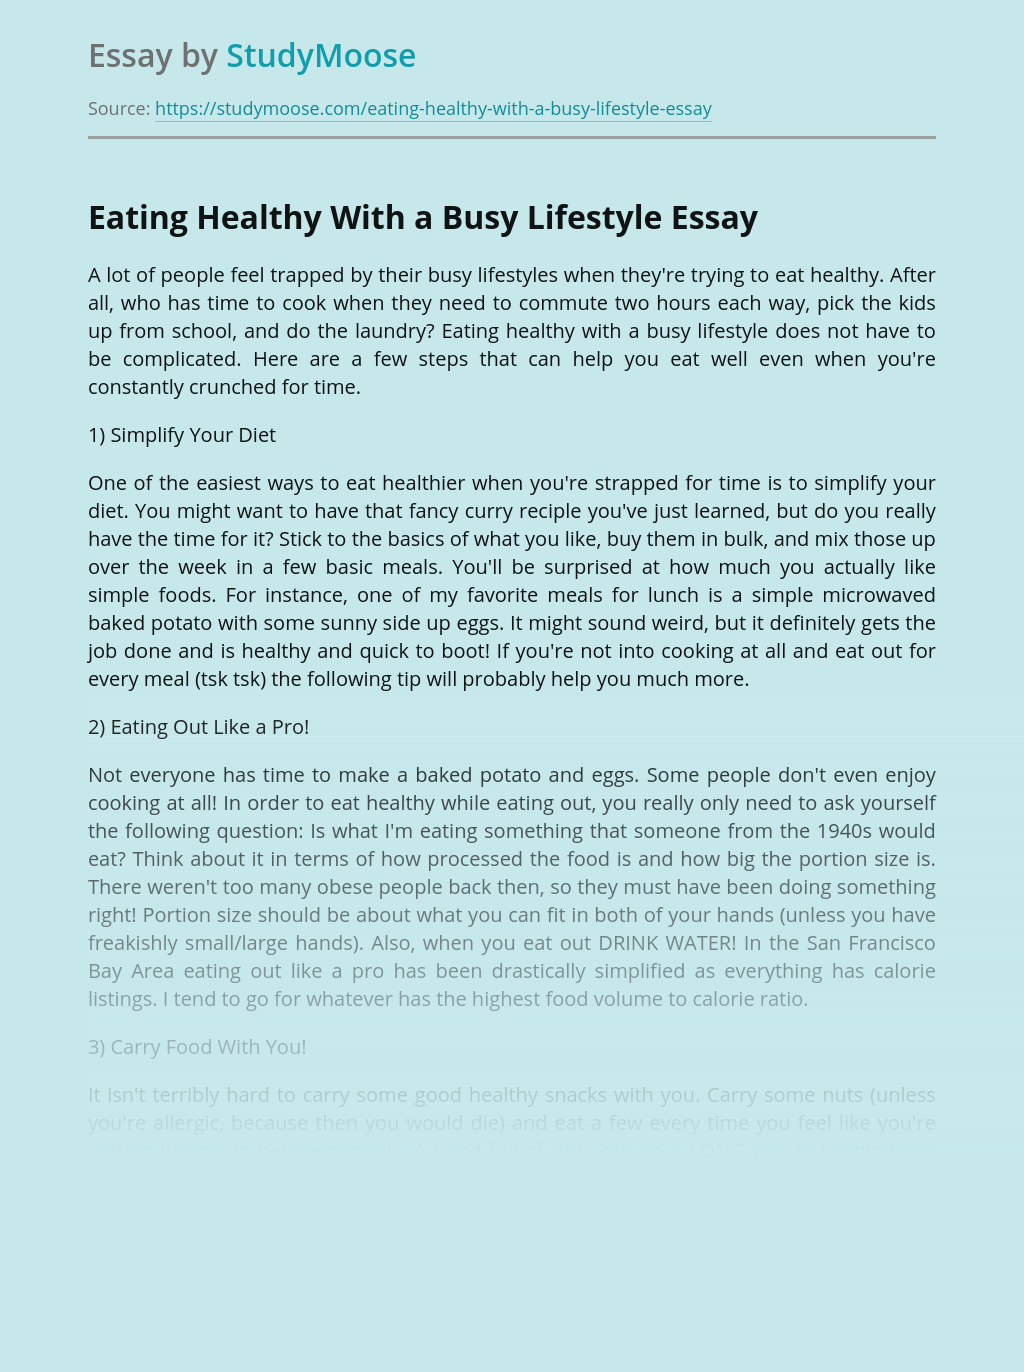 Eating Healthy With a Busy Lifestyle